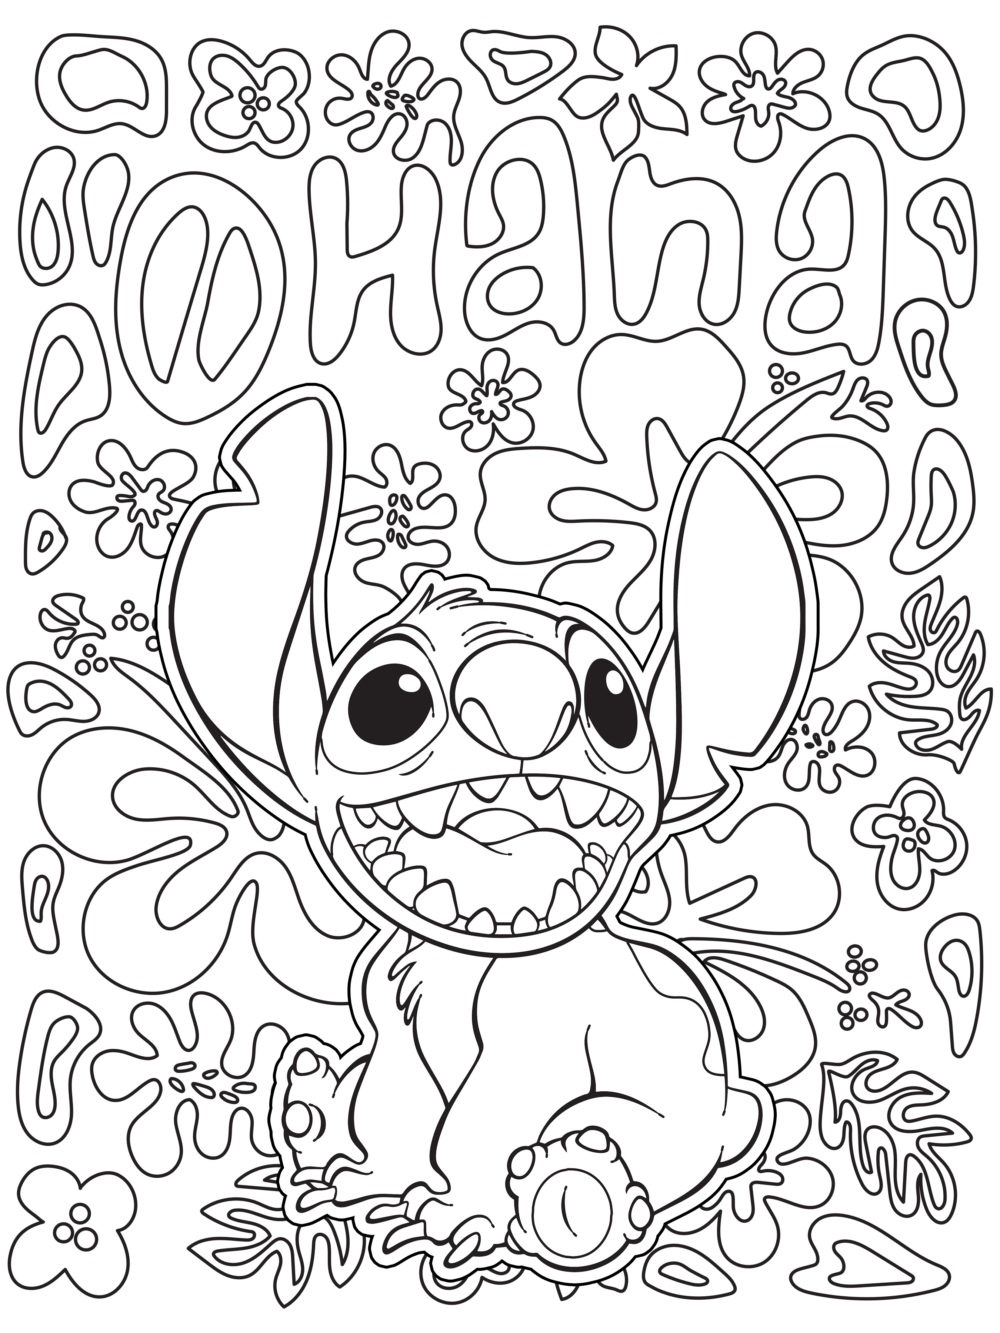 25+ Inspired Picture of Stress Relief Coloring Pages